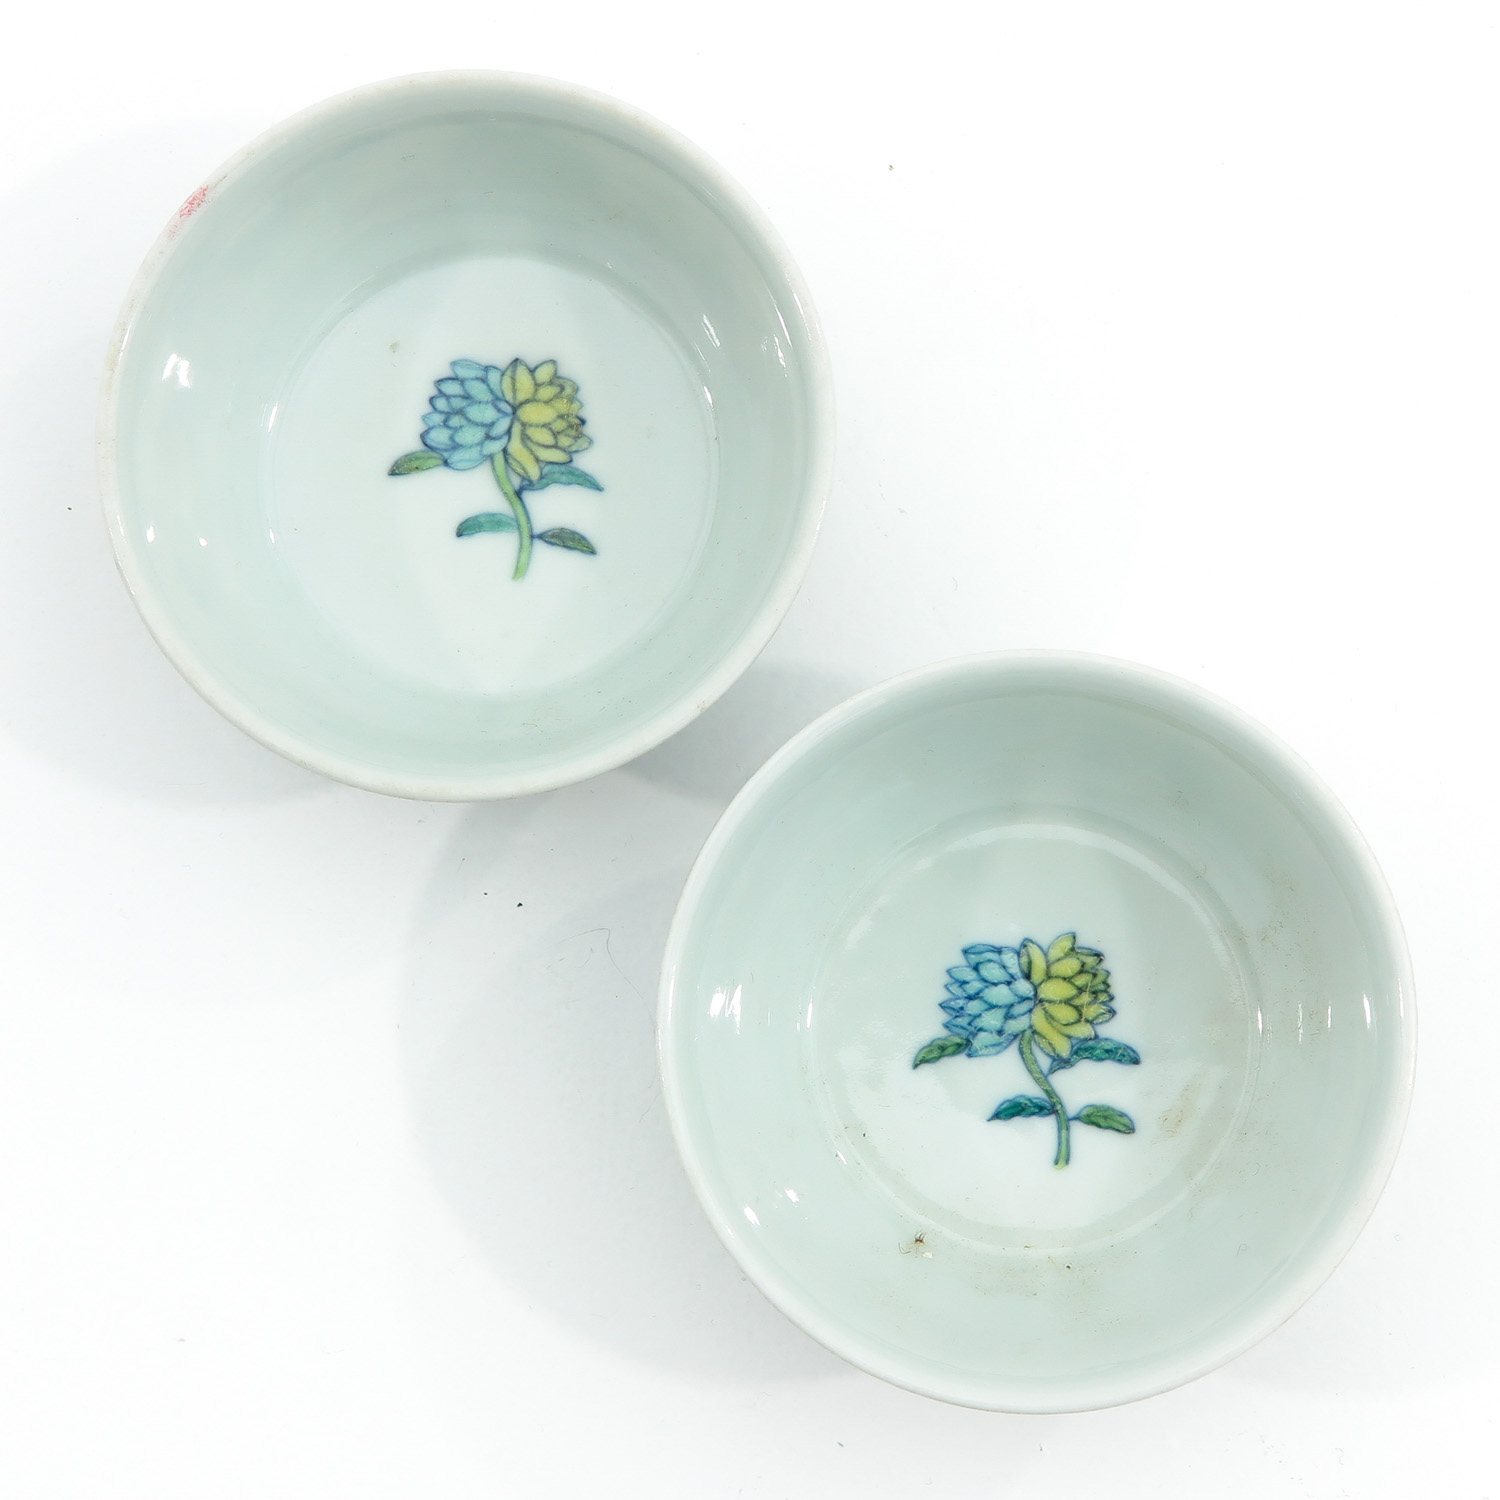 A Pair of Doucai Decor Cups - Image 5 of 10